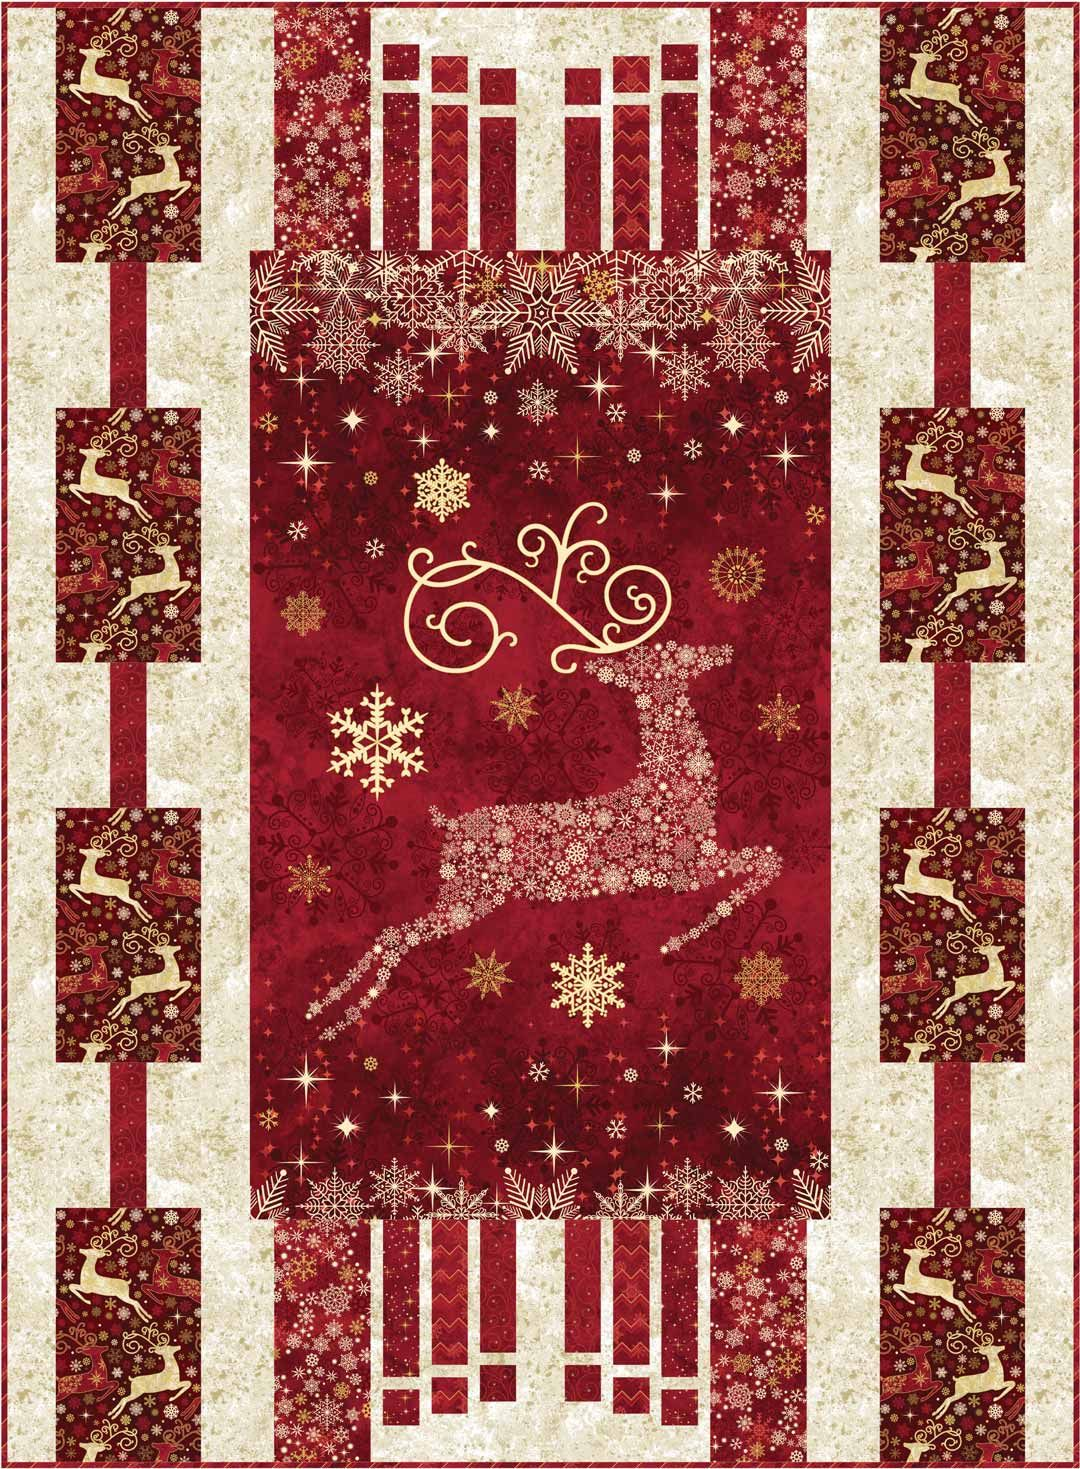 Dazzle Christmas panel quilt pattern with three border designs by ... : christmas quilting panels - Adamdwight.com